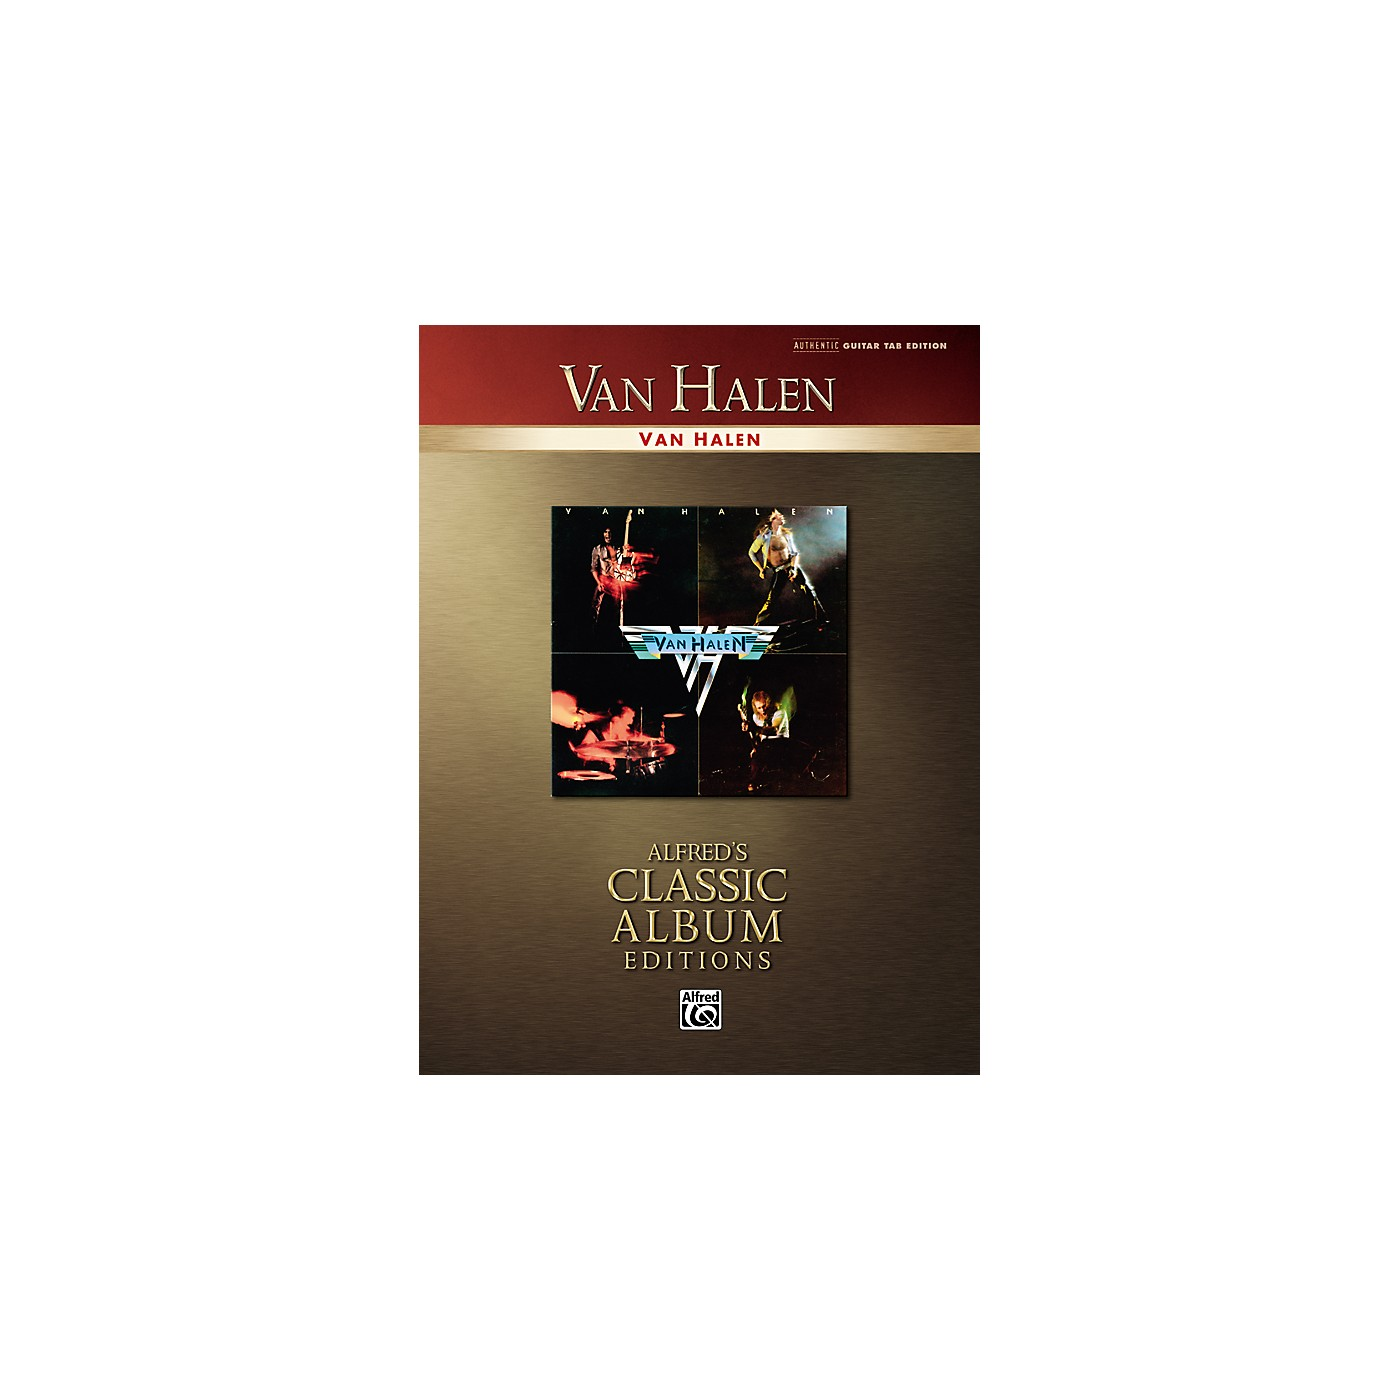 Alfred Van Halen Collection Classic Album Edition Guitar Tab Songbook thumbnail